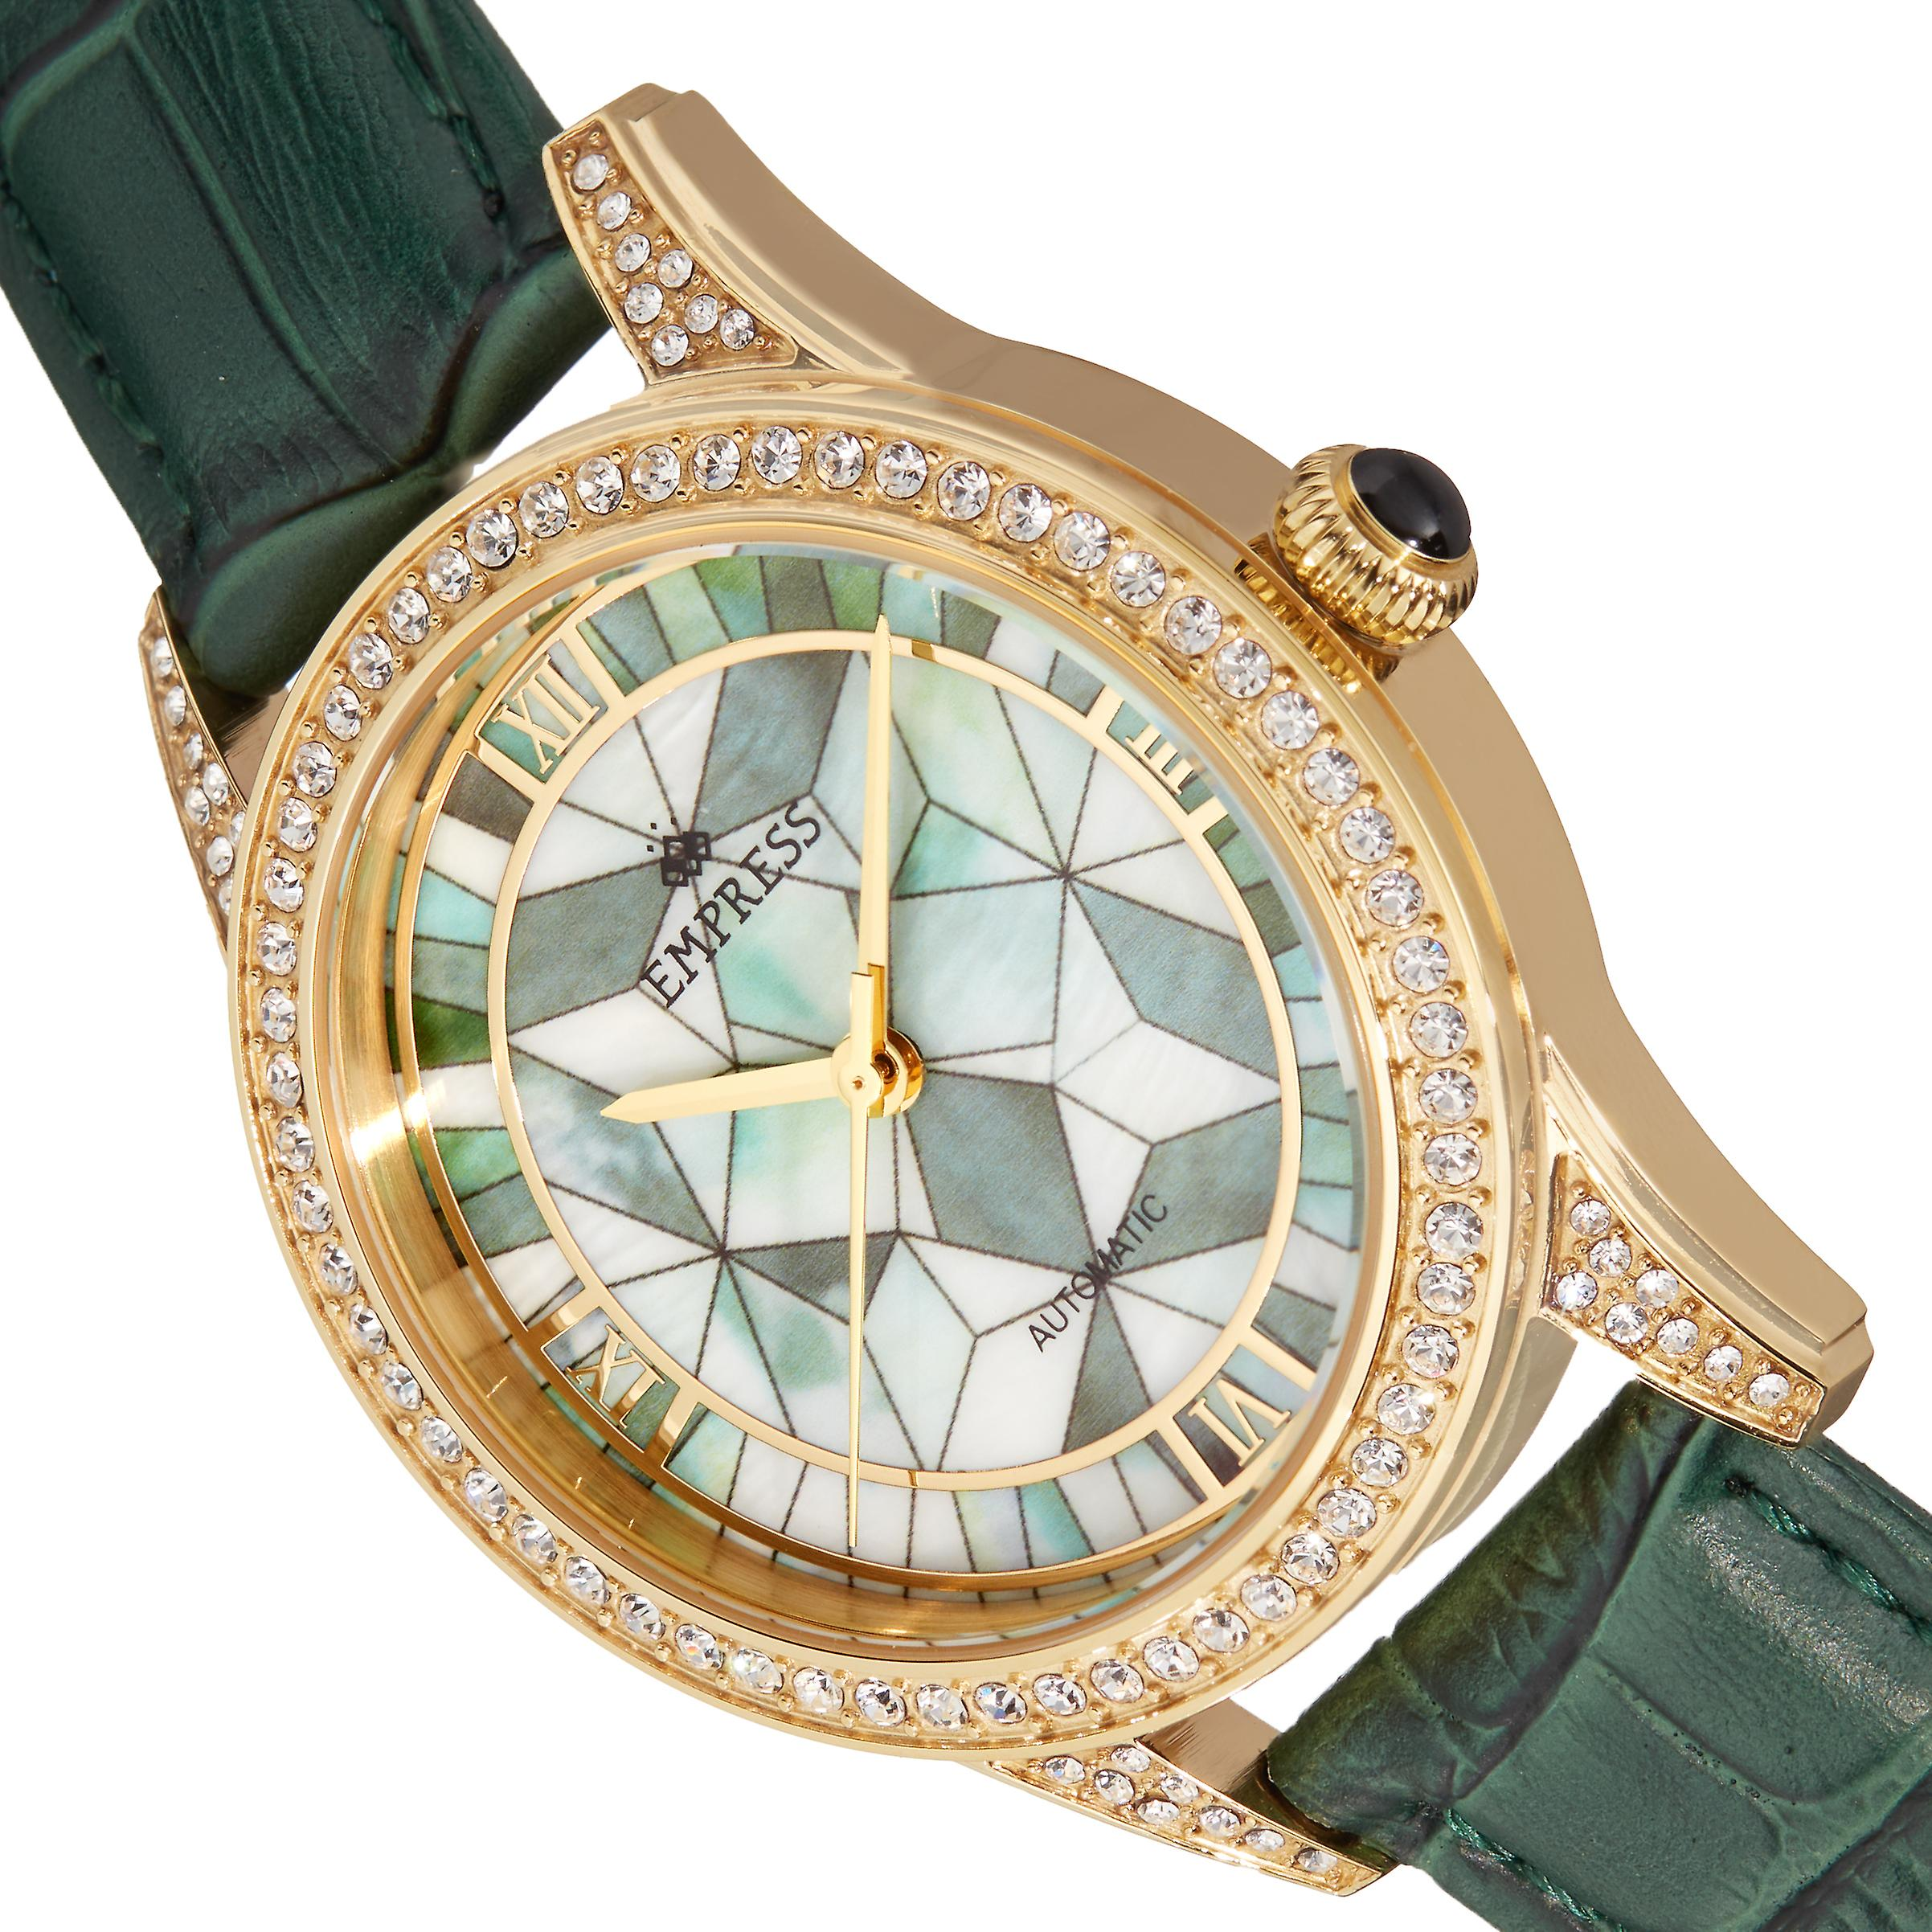 Empress Augusta Automatic Mosaic Mother-of-Pearl Leather-Band Watch - Gold/Green